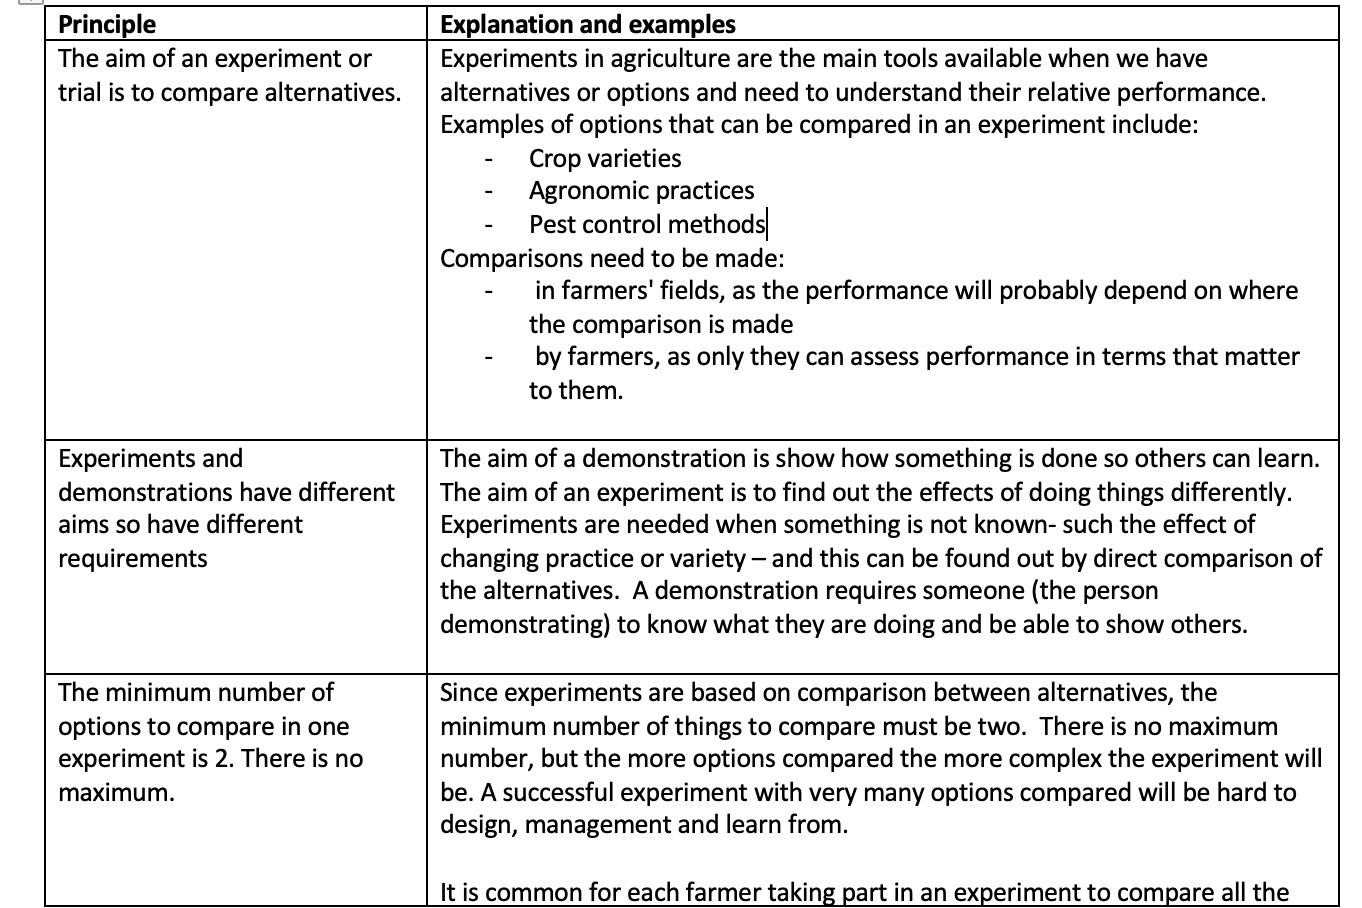 Principles of experimentation that farmers need to understand